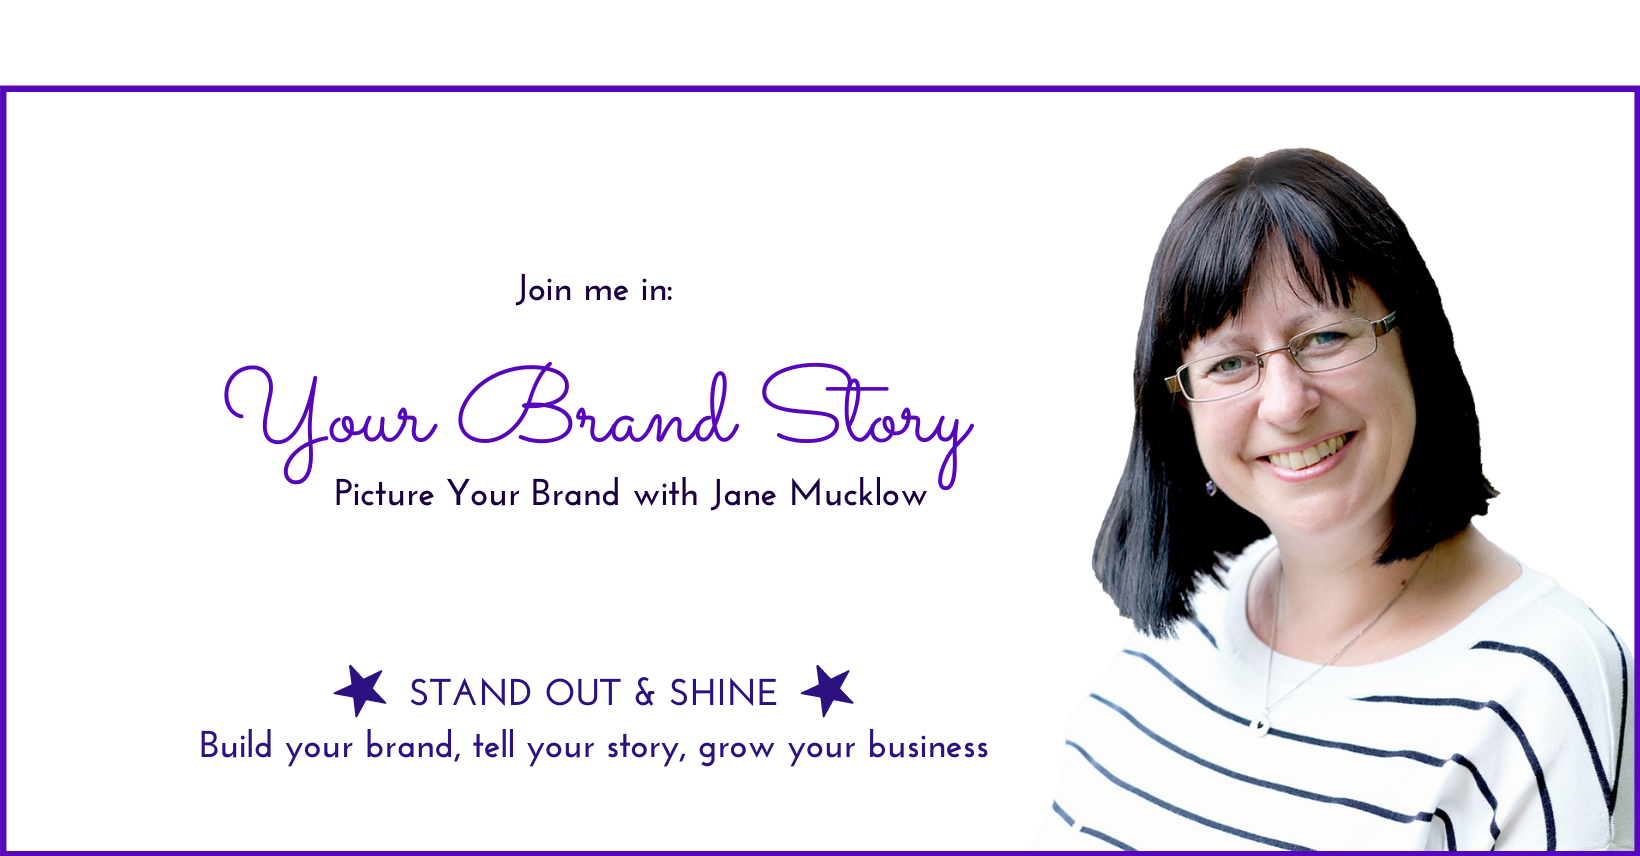 Image for Your Brand Story facebook group by Jane Mucklow Picture Your Brand